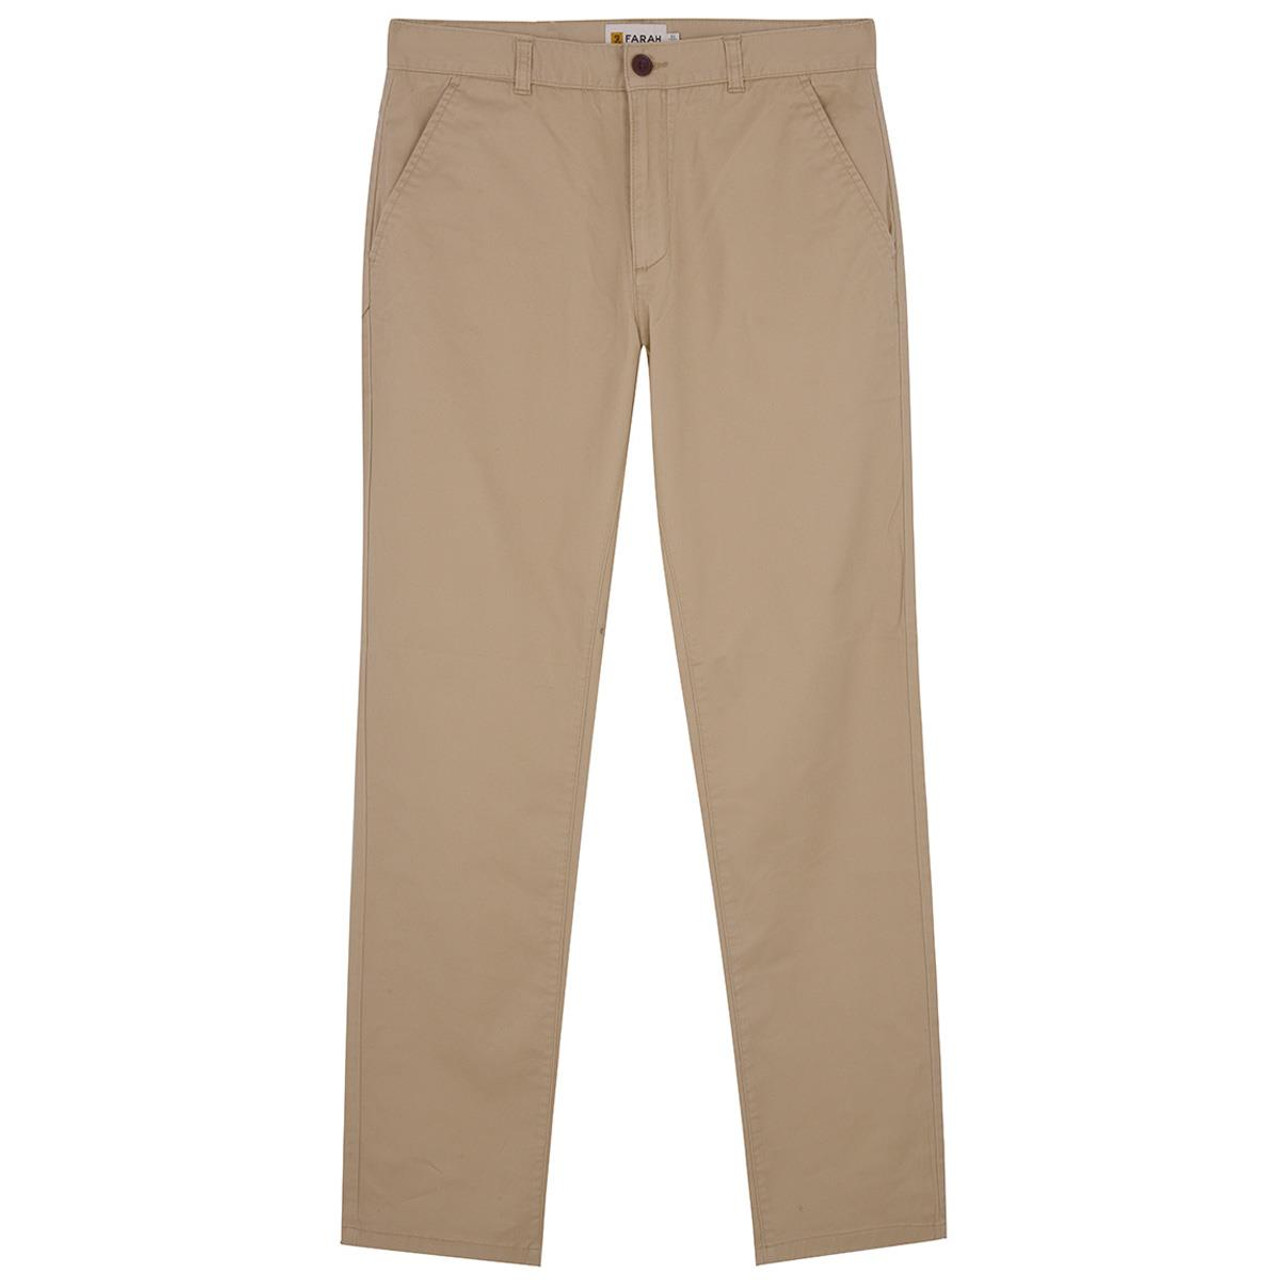 Burnt Sand Farah Mens Crane Stretch Chinos